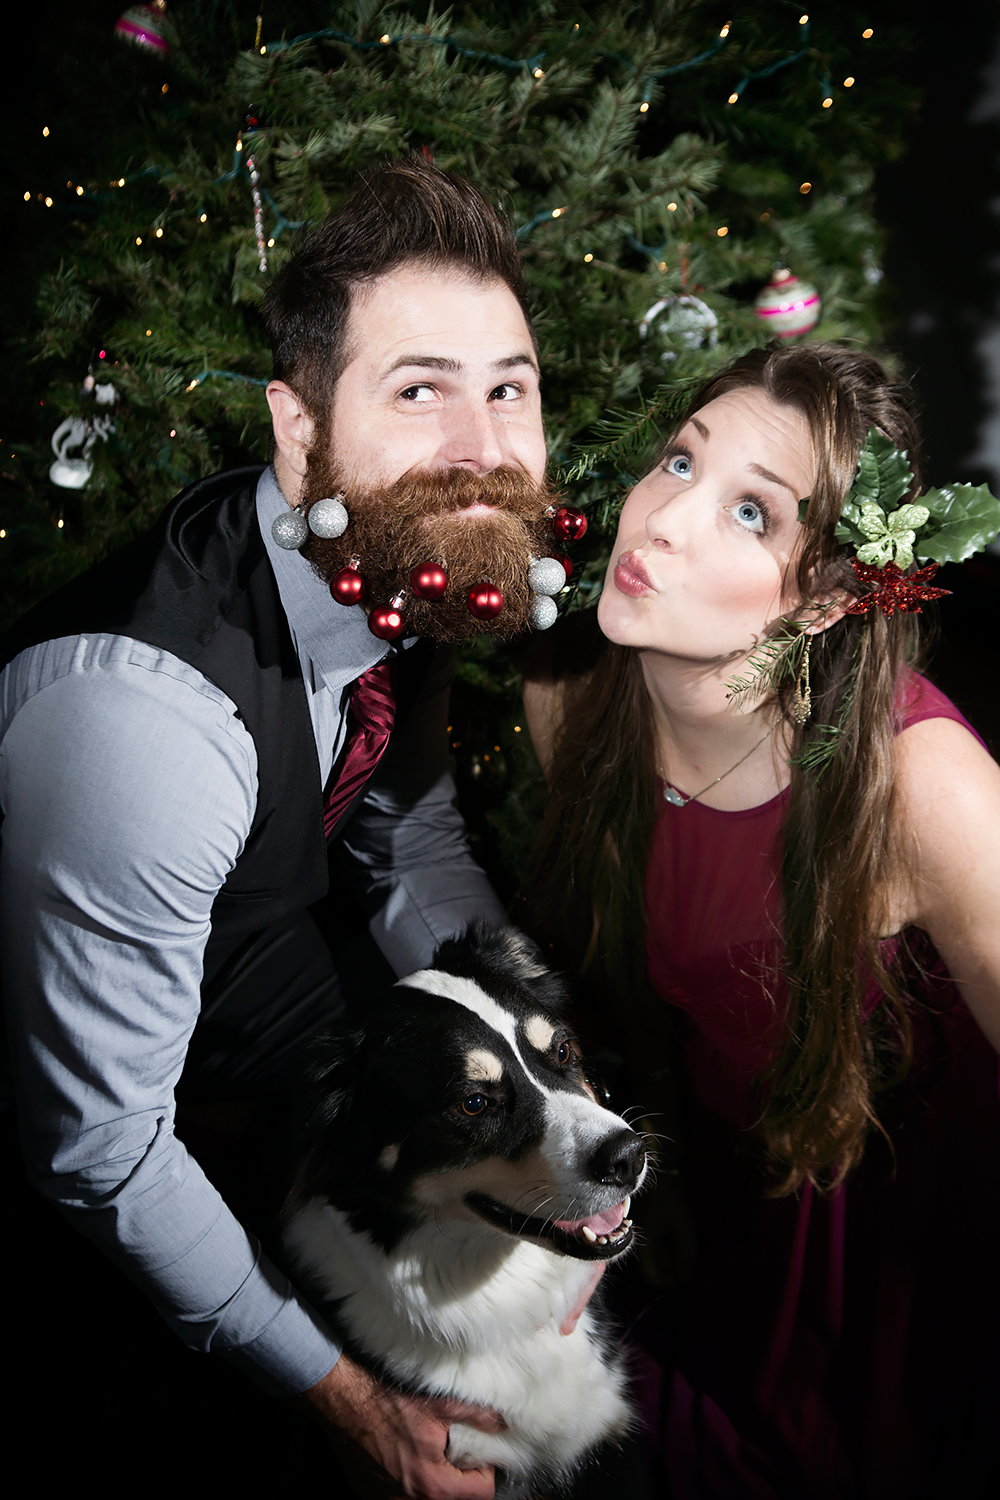 funny christmas photo with dog, formal christmas photo, ornaments in beard